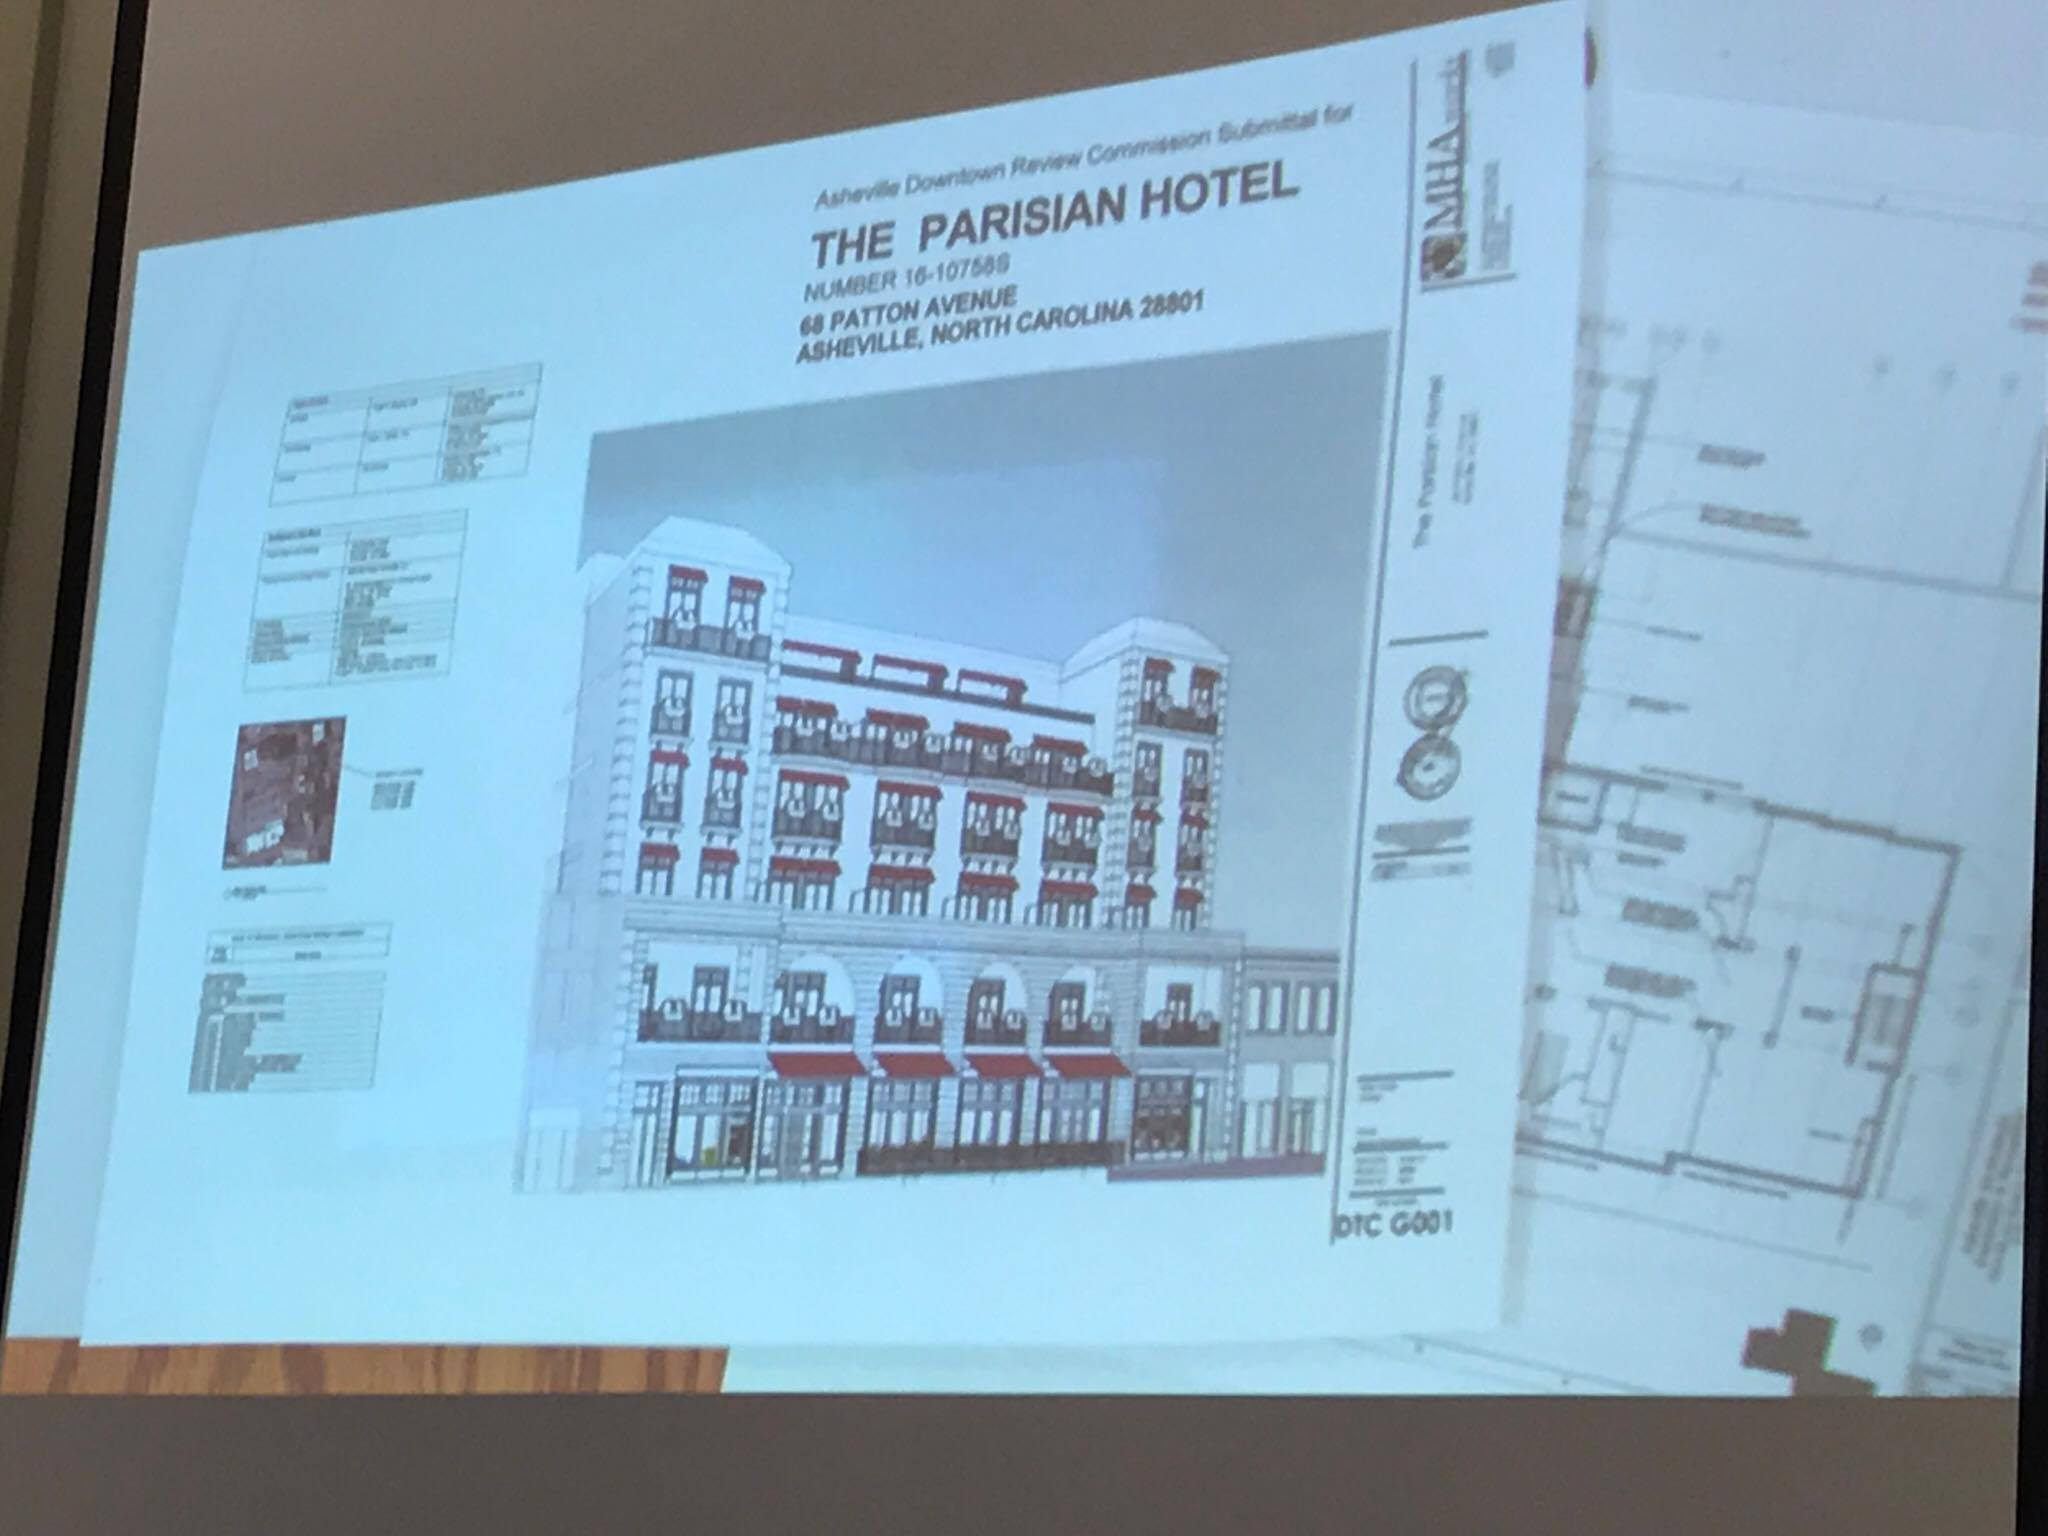 Parisian hotel proposal for downtown Asheville set for next review